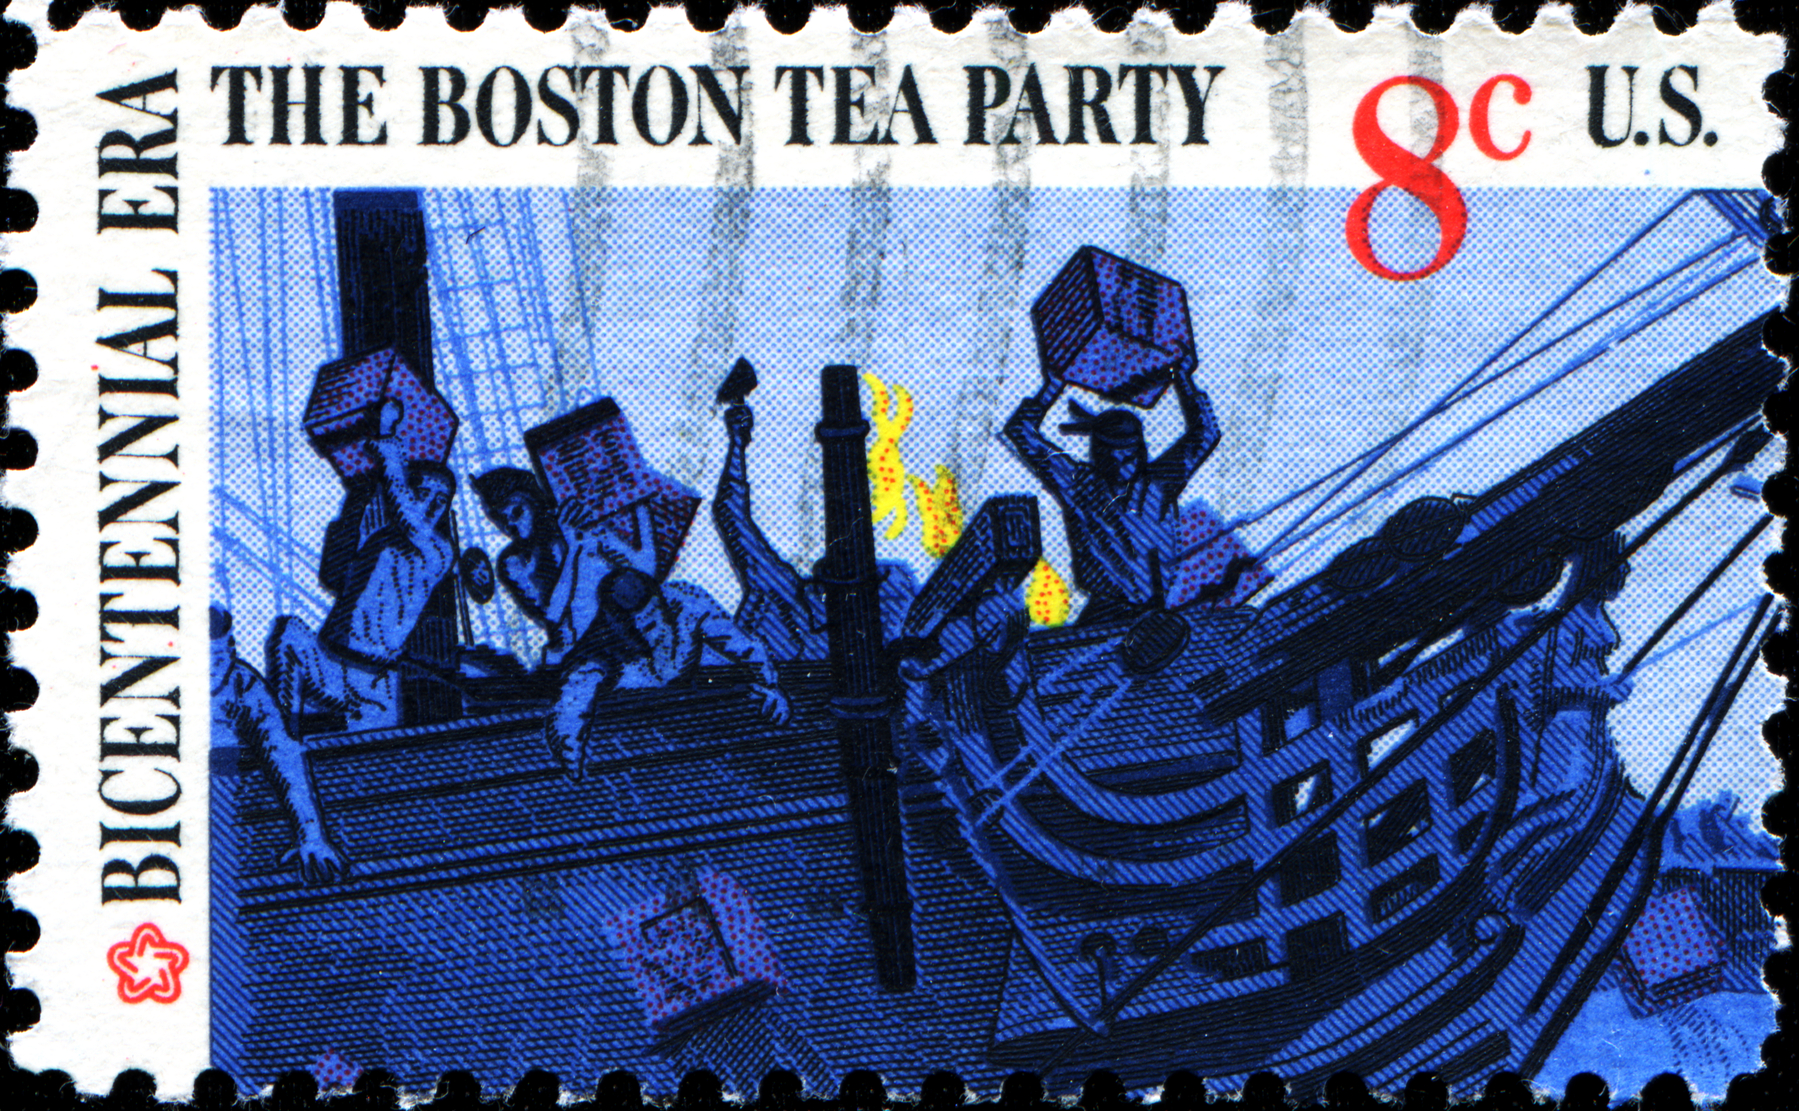 2015-01-08-TeaParty.jpg